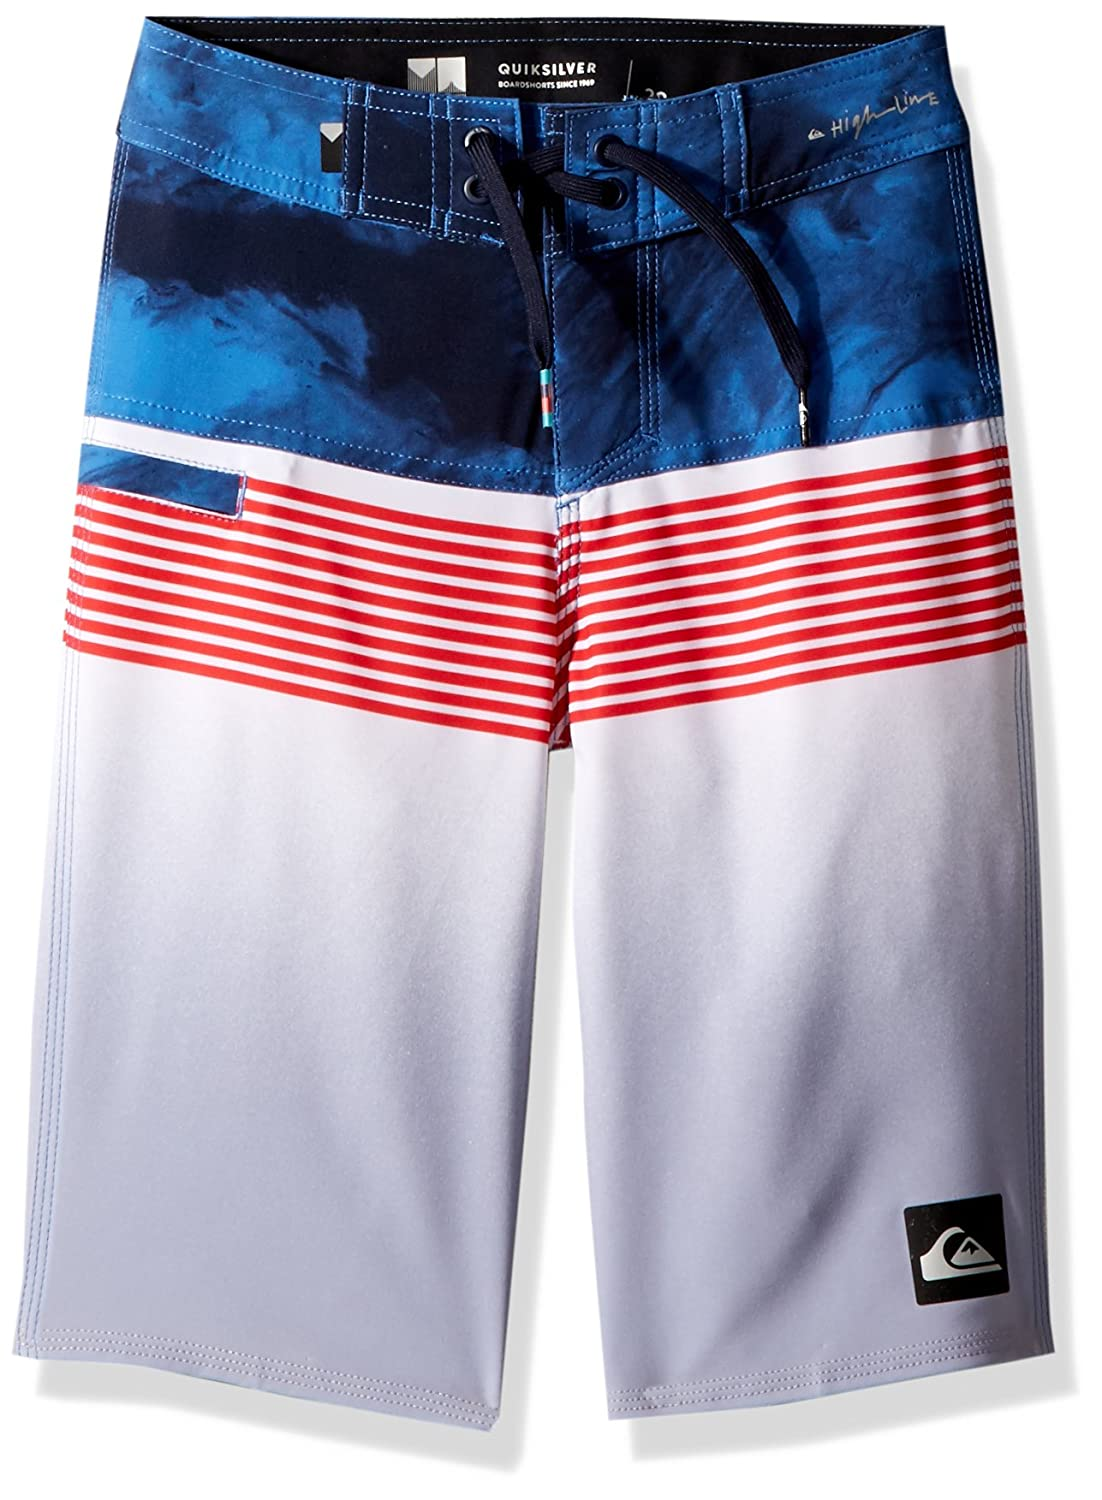 Quiksilver Boys' Big Highline Lava Division Youth Boardshort Swim Trunk